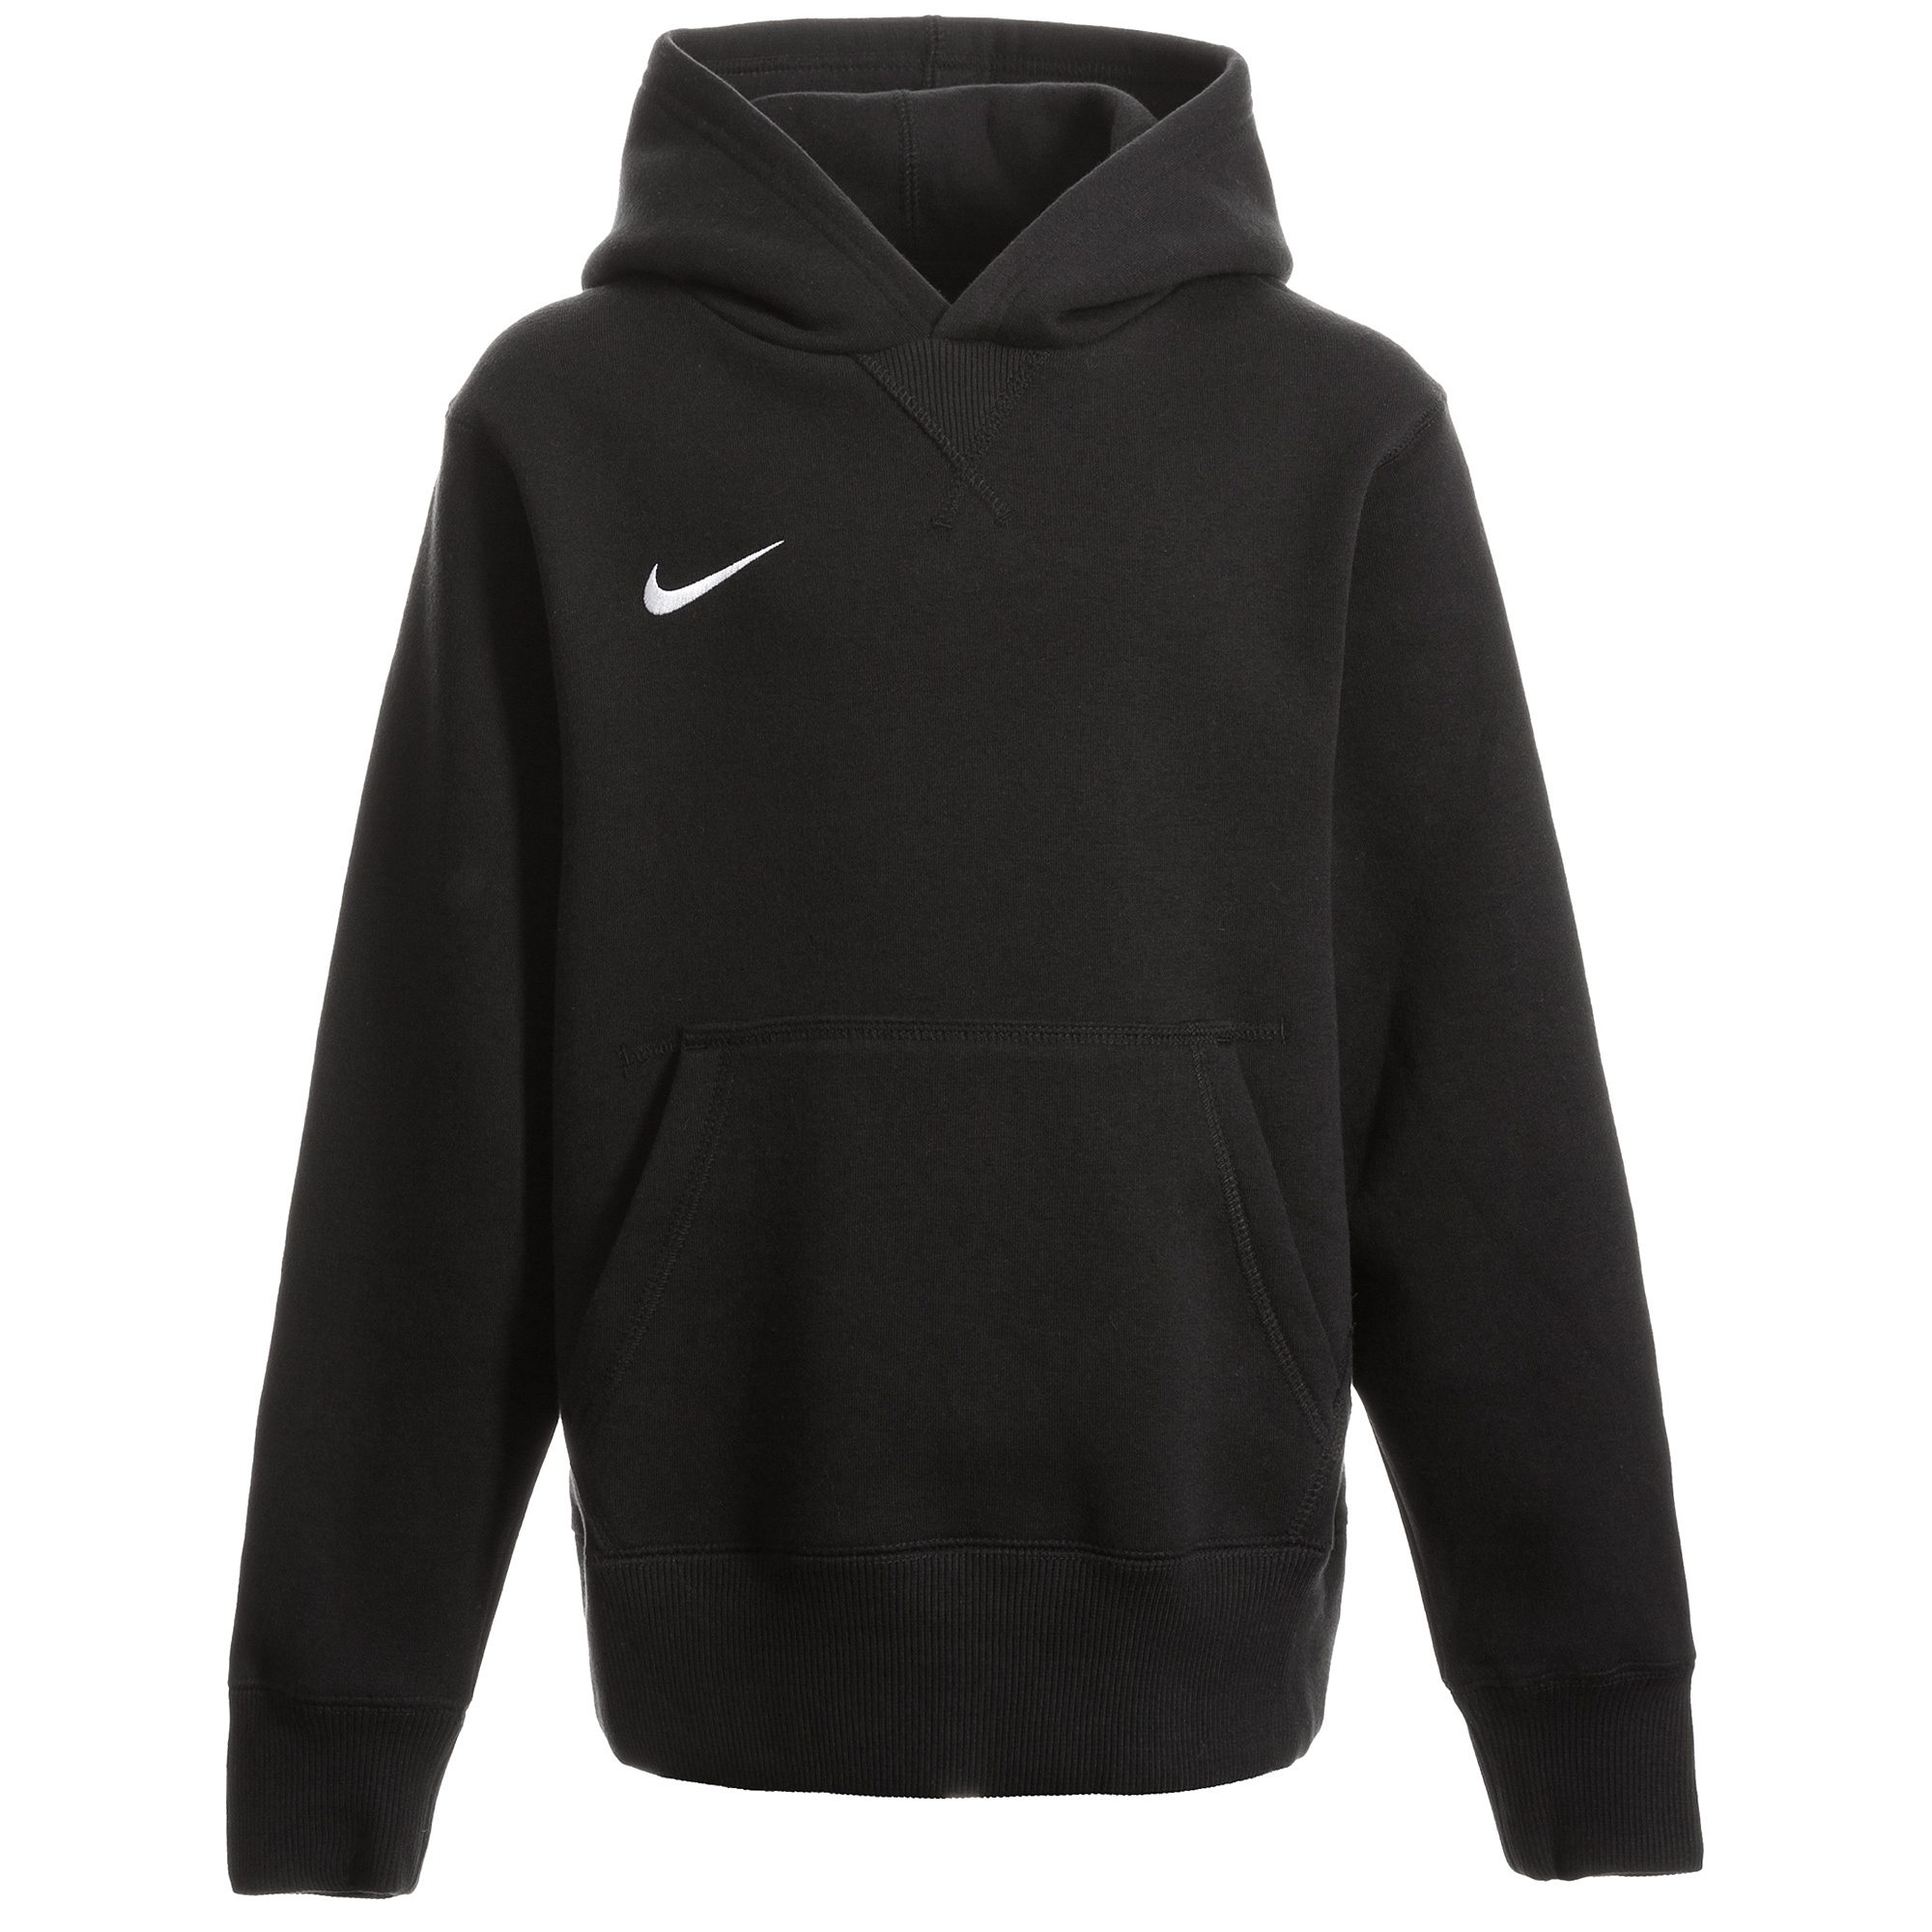 Nike Fleece Kinder Nike Core Fleece Kapuzenpullover Kinder Kaufen Otto